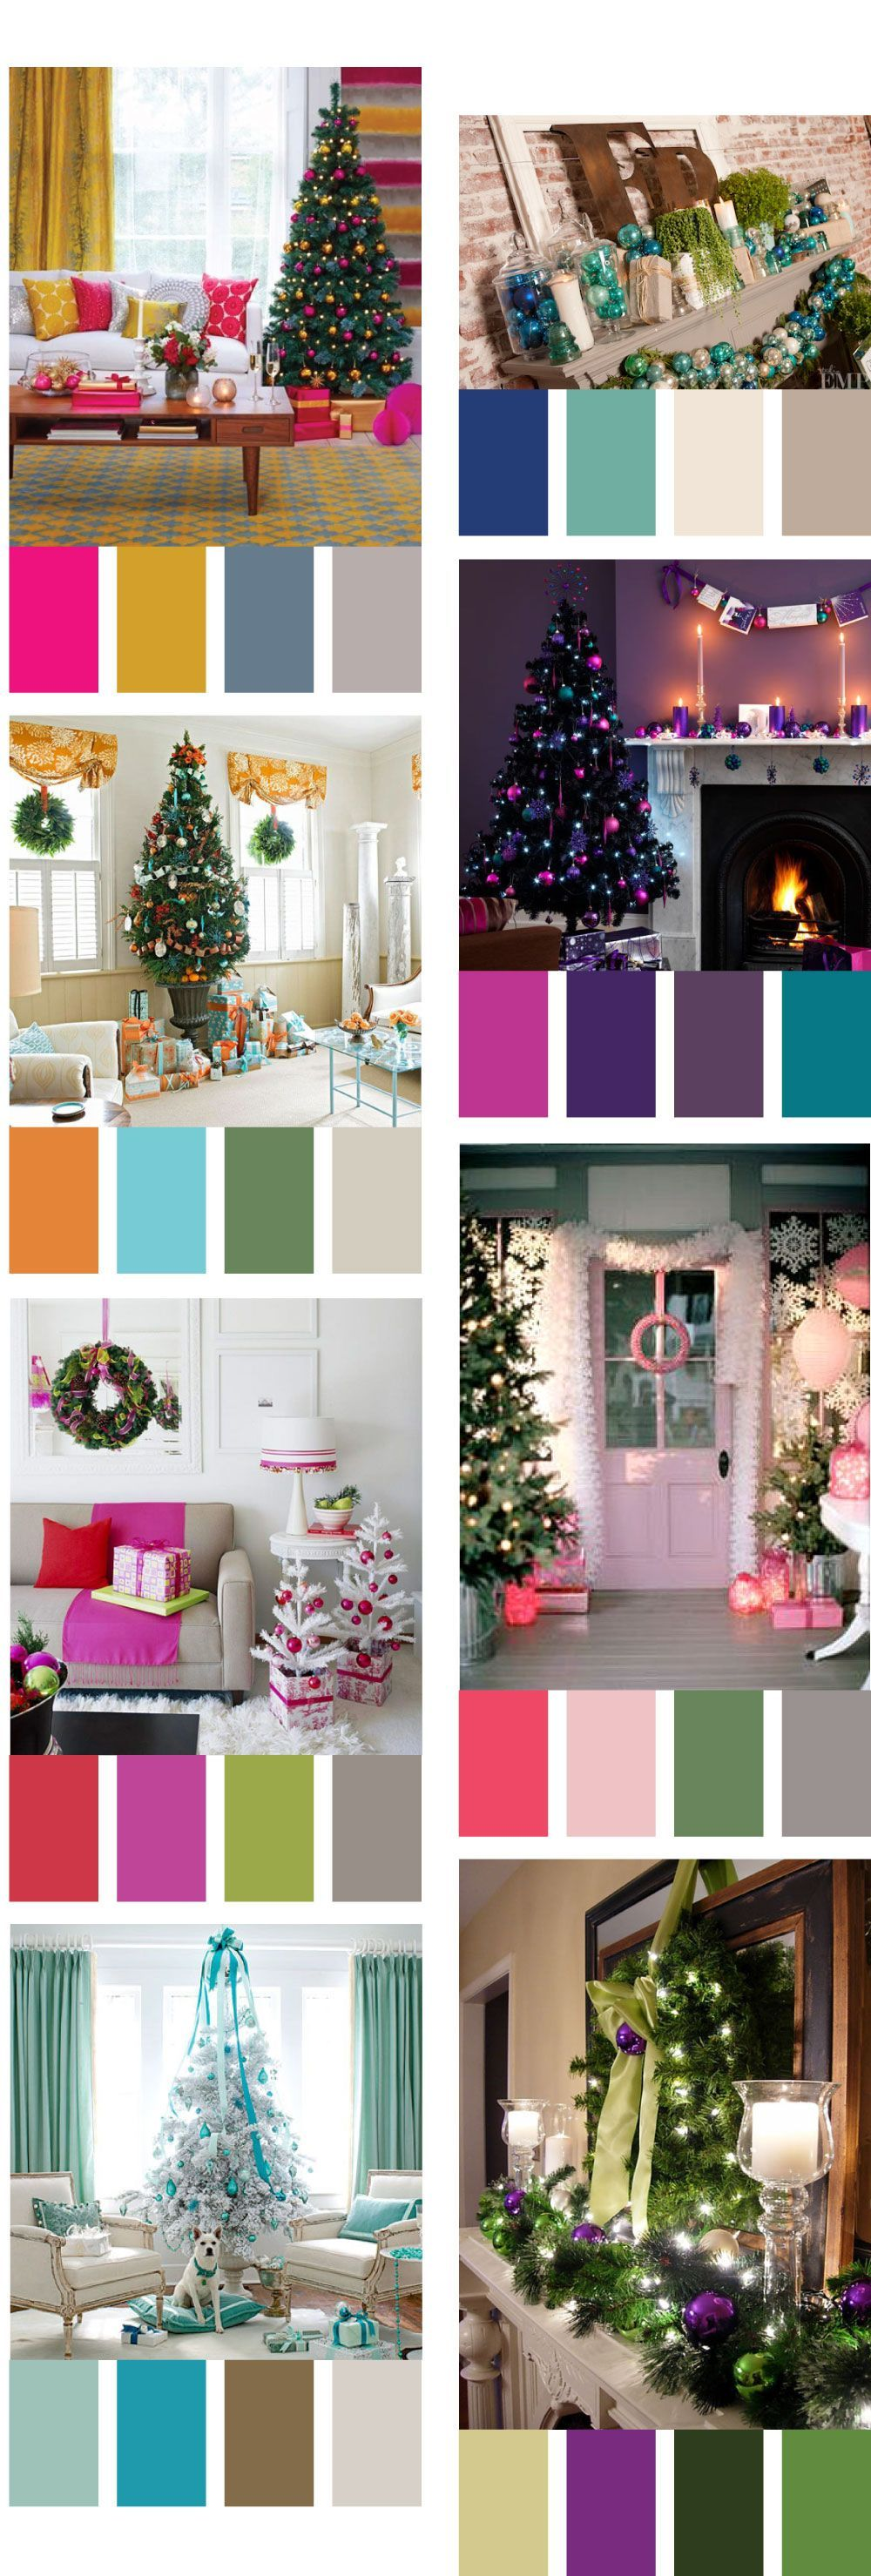 Great Non Traditional Christmas Color Palettes Lola Belle Co Thought You Would Like This Decoratingachristmastree Kerst Kerstversiering Kerstmis